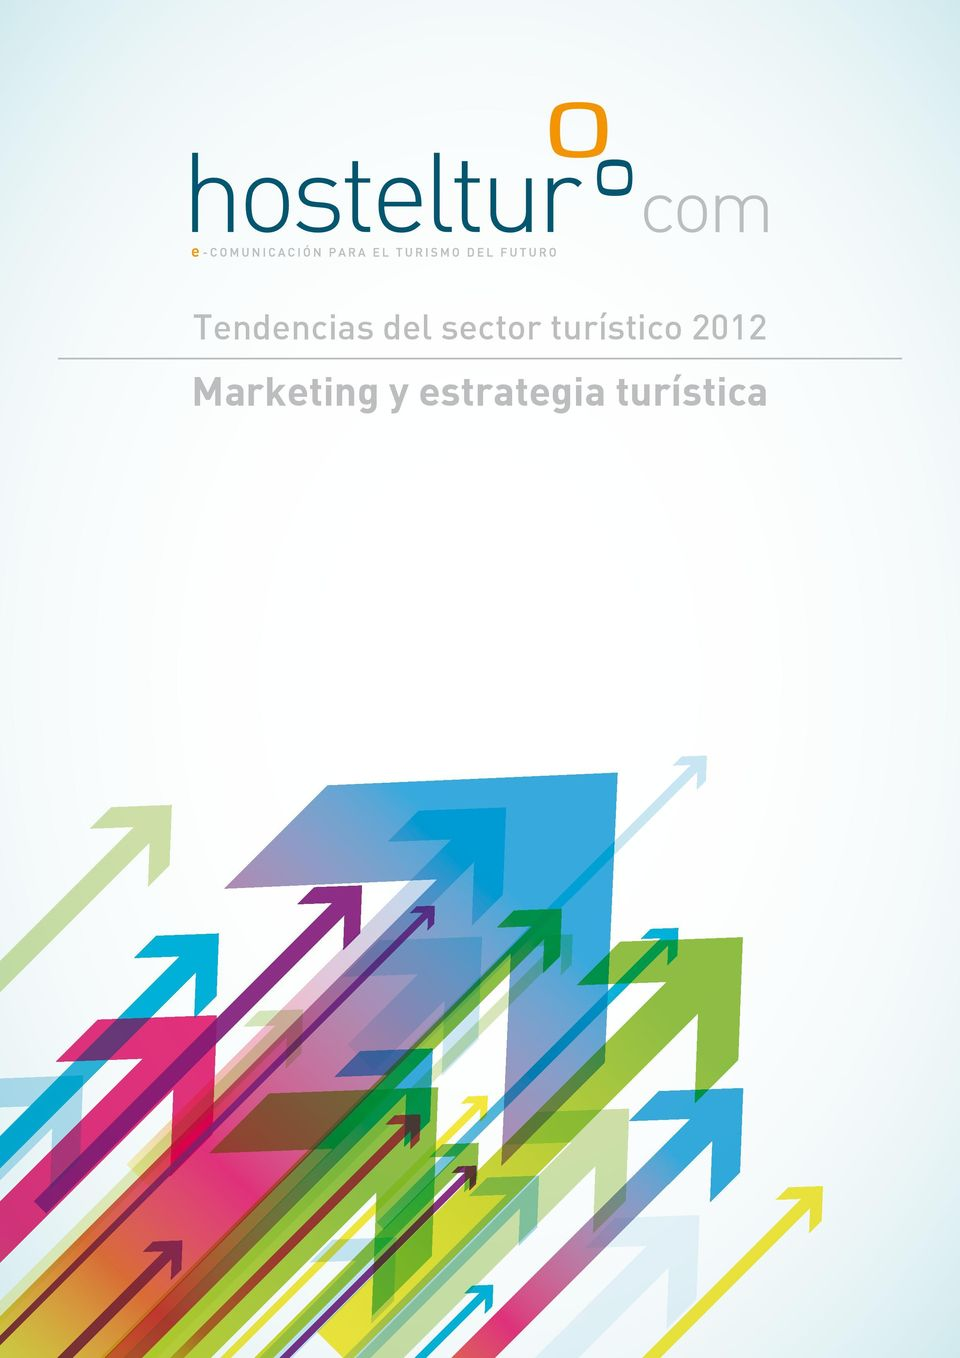 2012 Marketing y